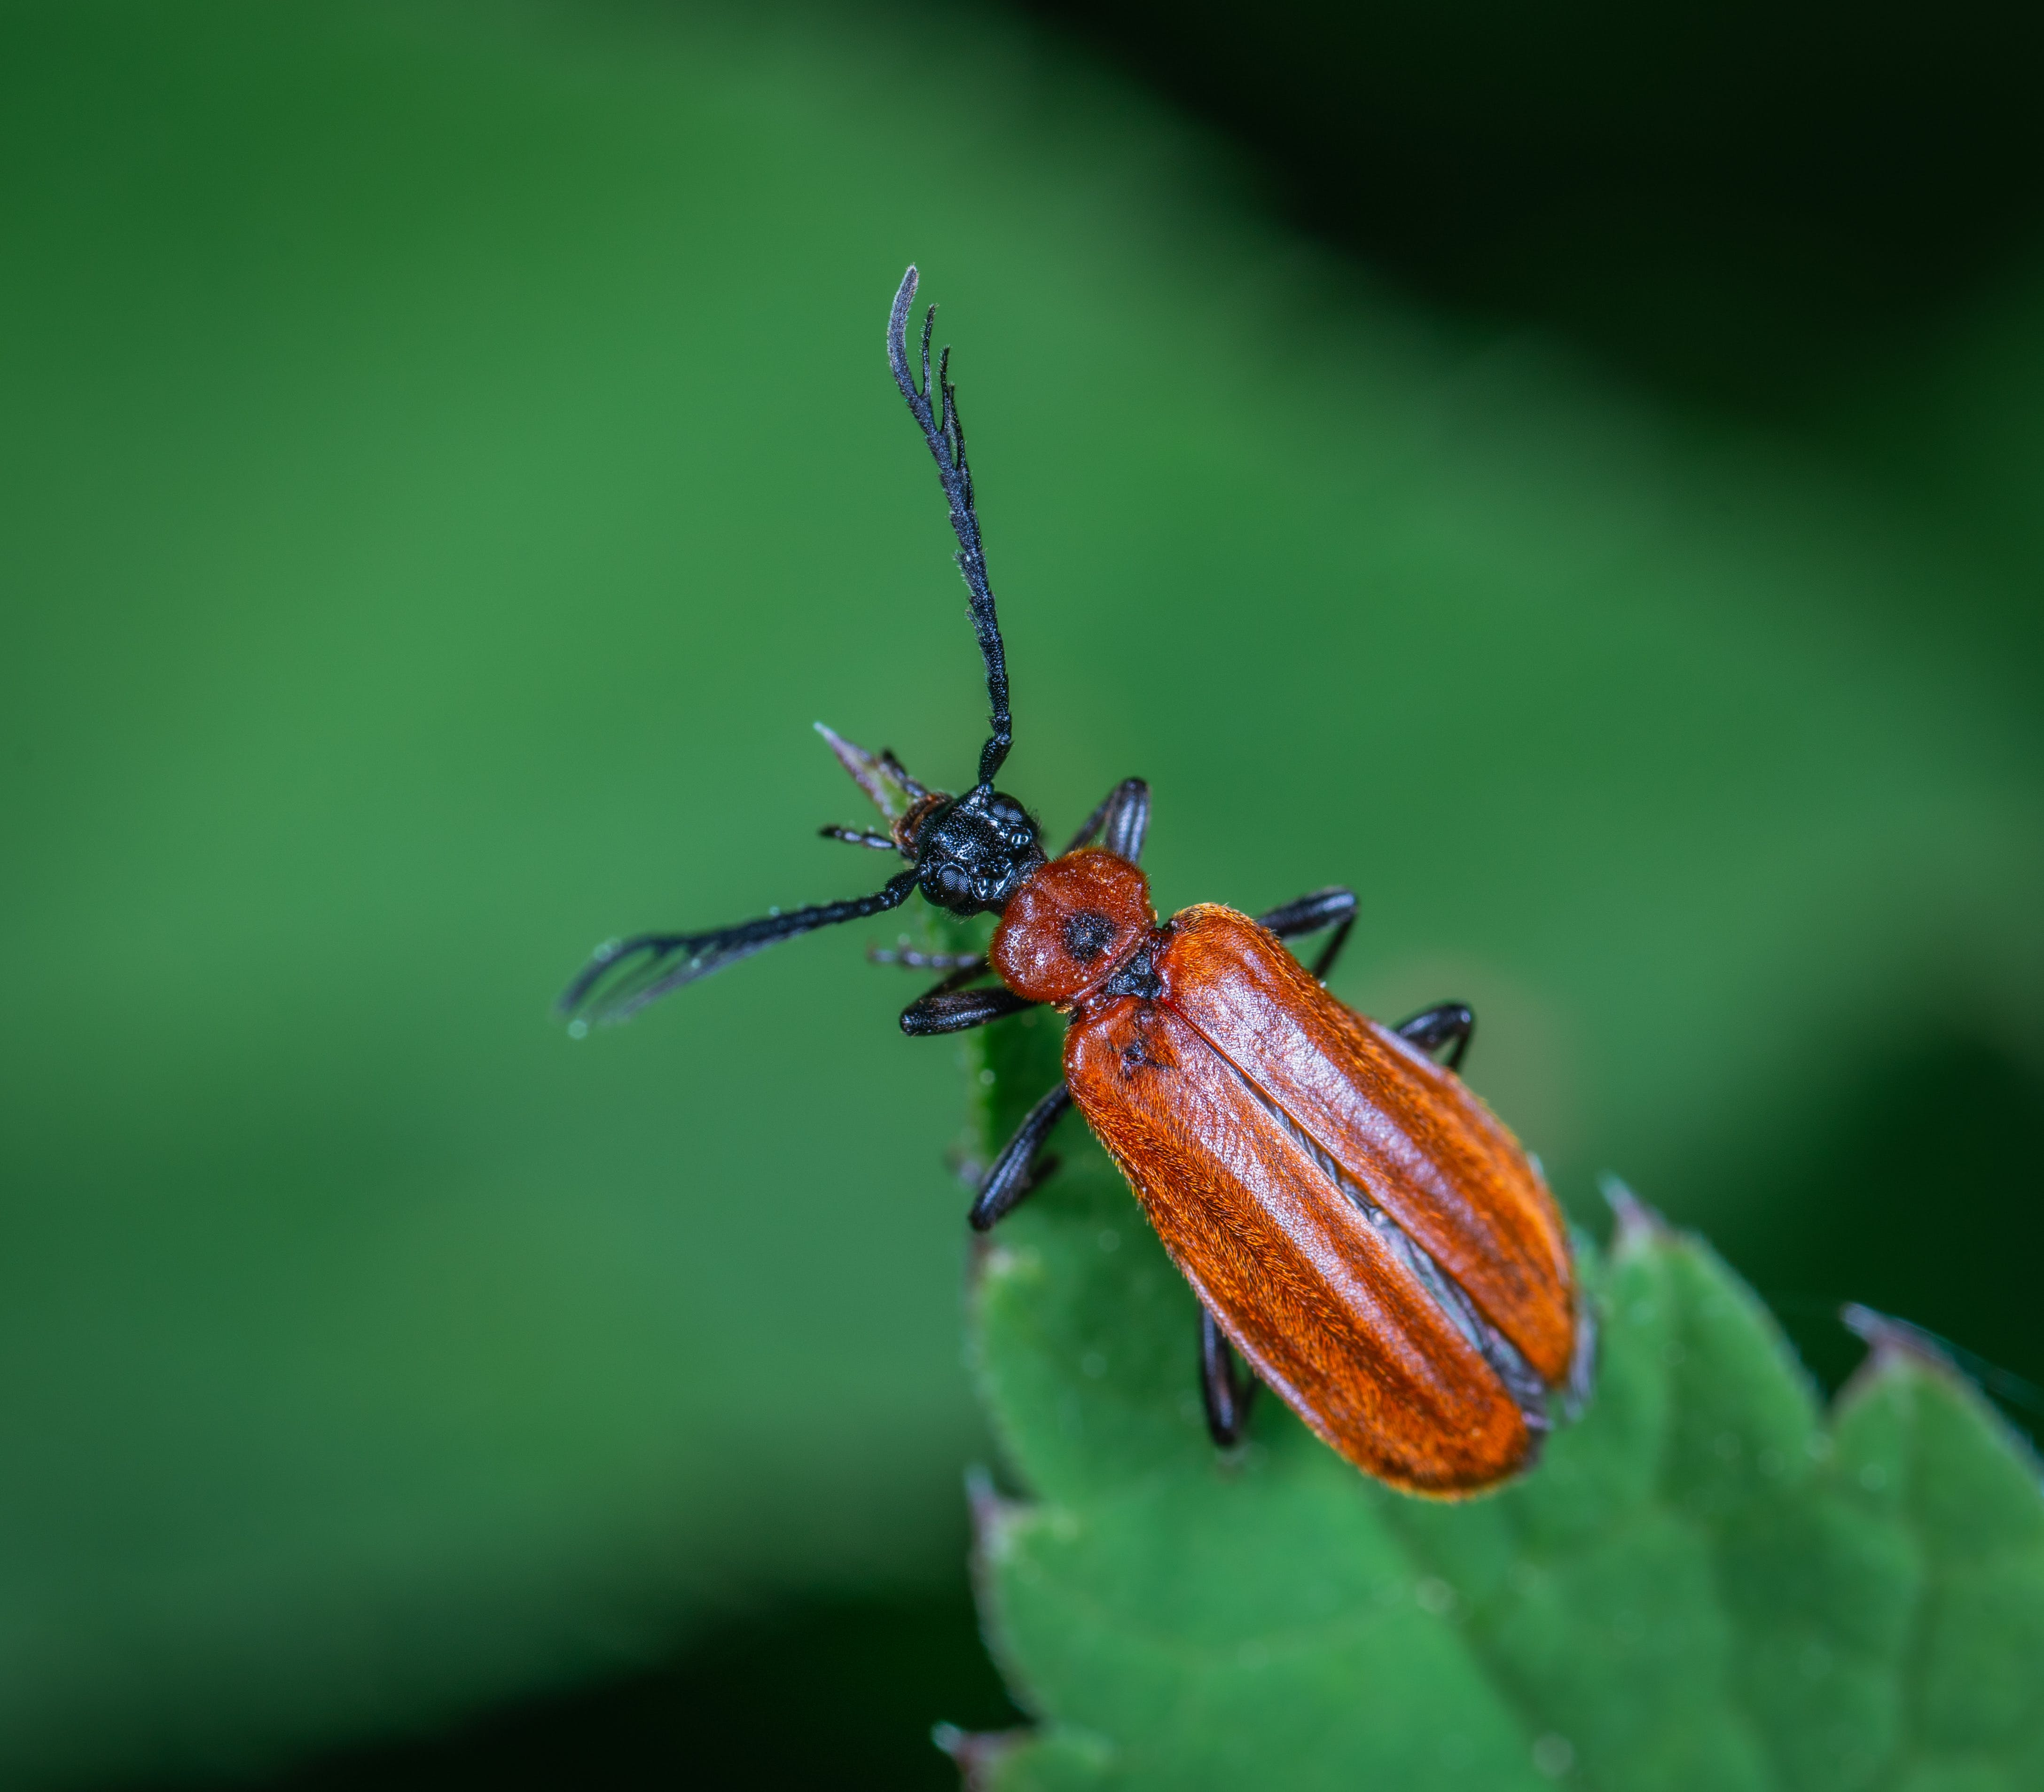 horned Beetle Perched On Green Leaf